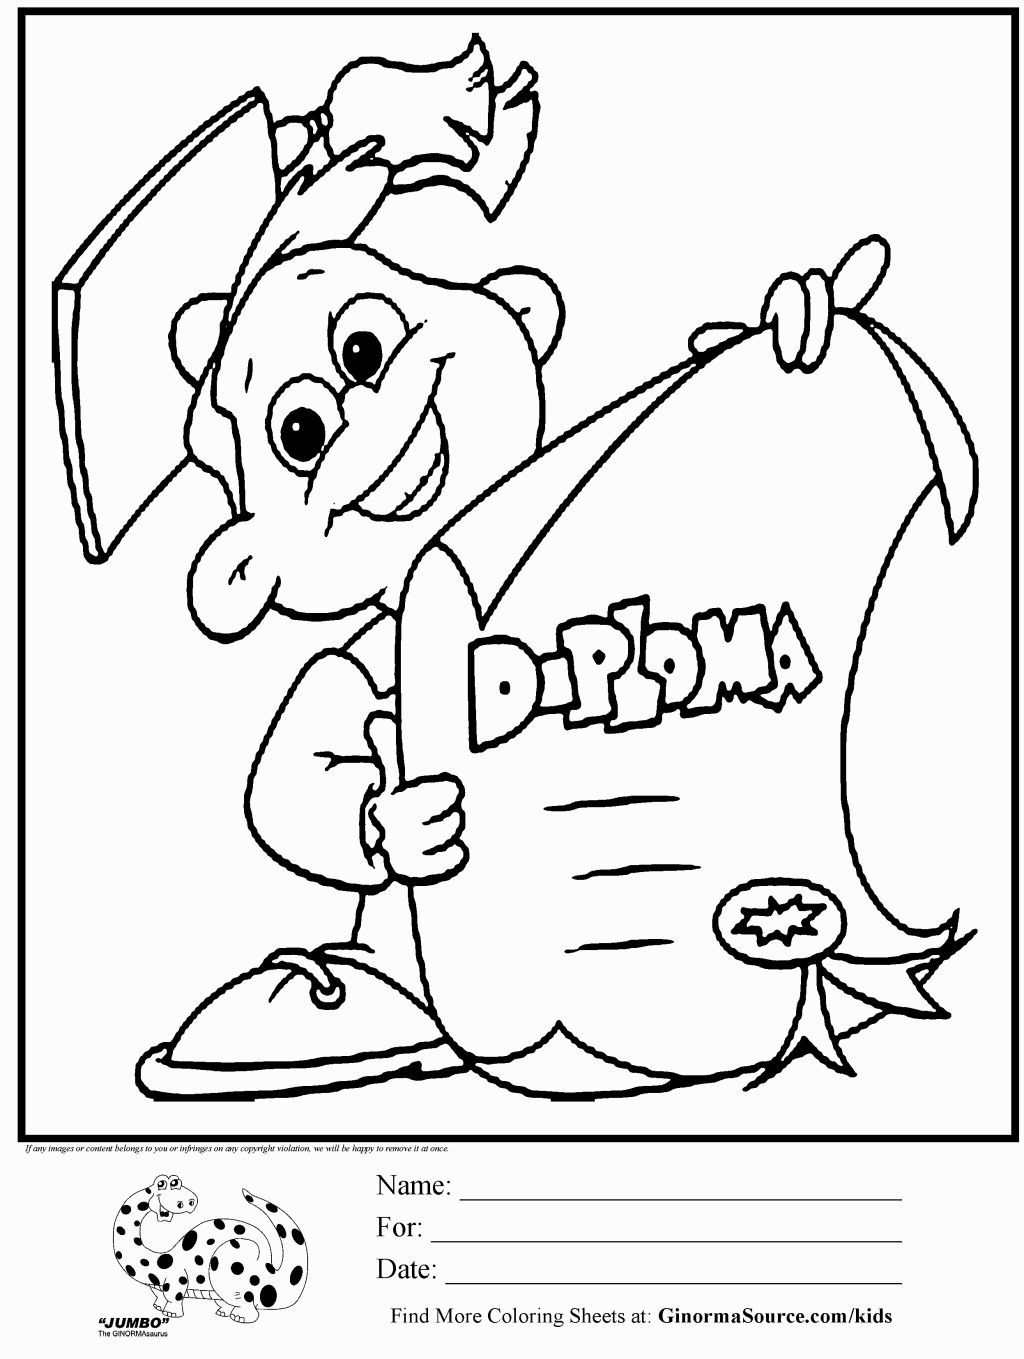 Graduation Coloring Pages | Coloring Pages | Pinterest